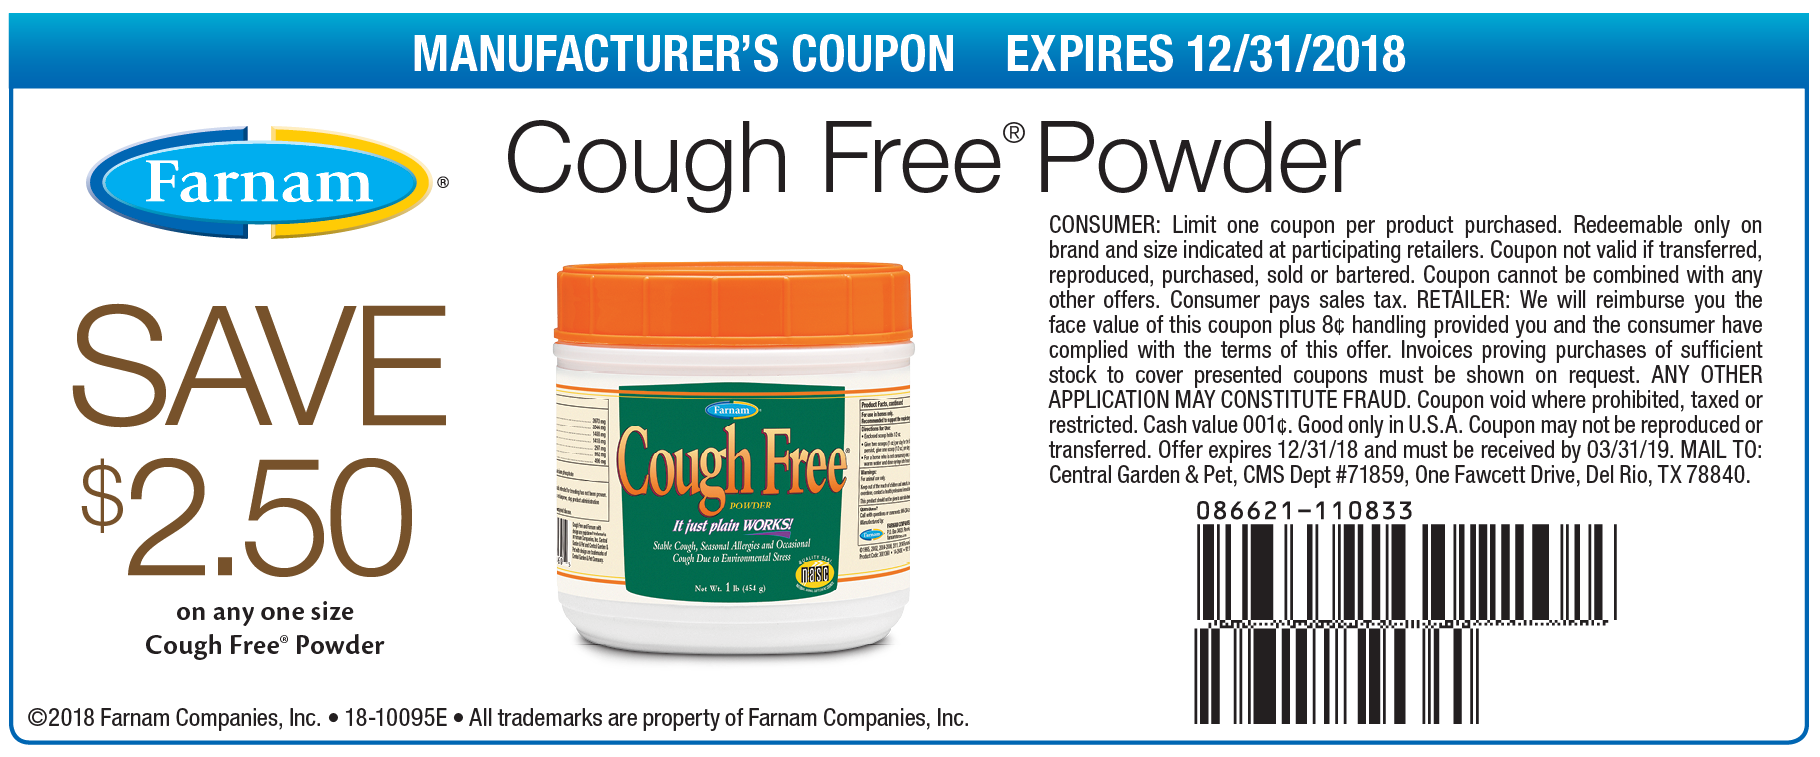 save 2 50 on cough free farnam